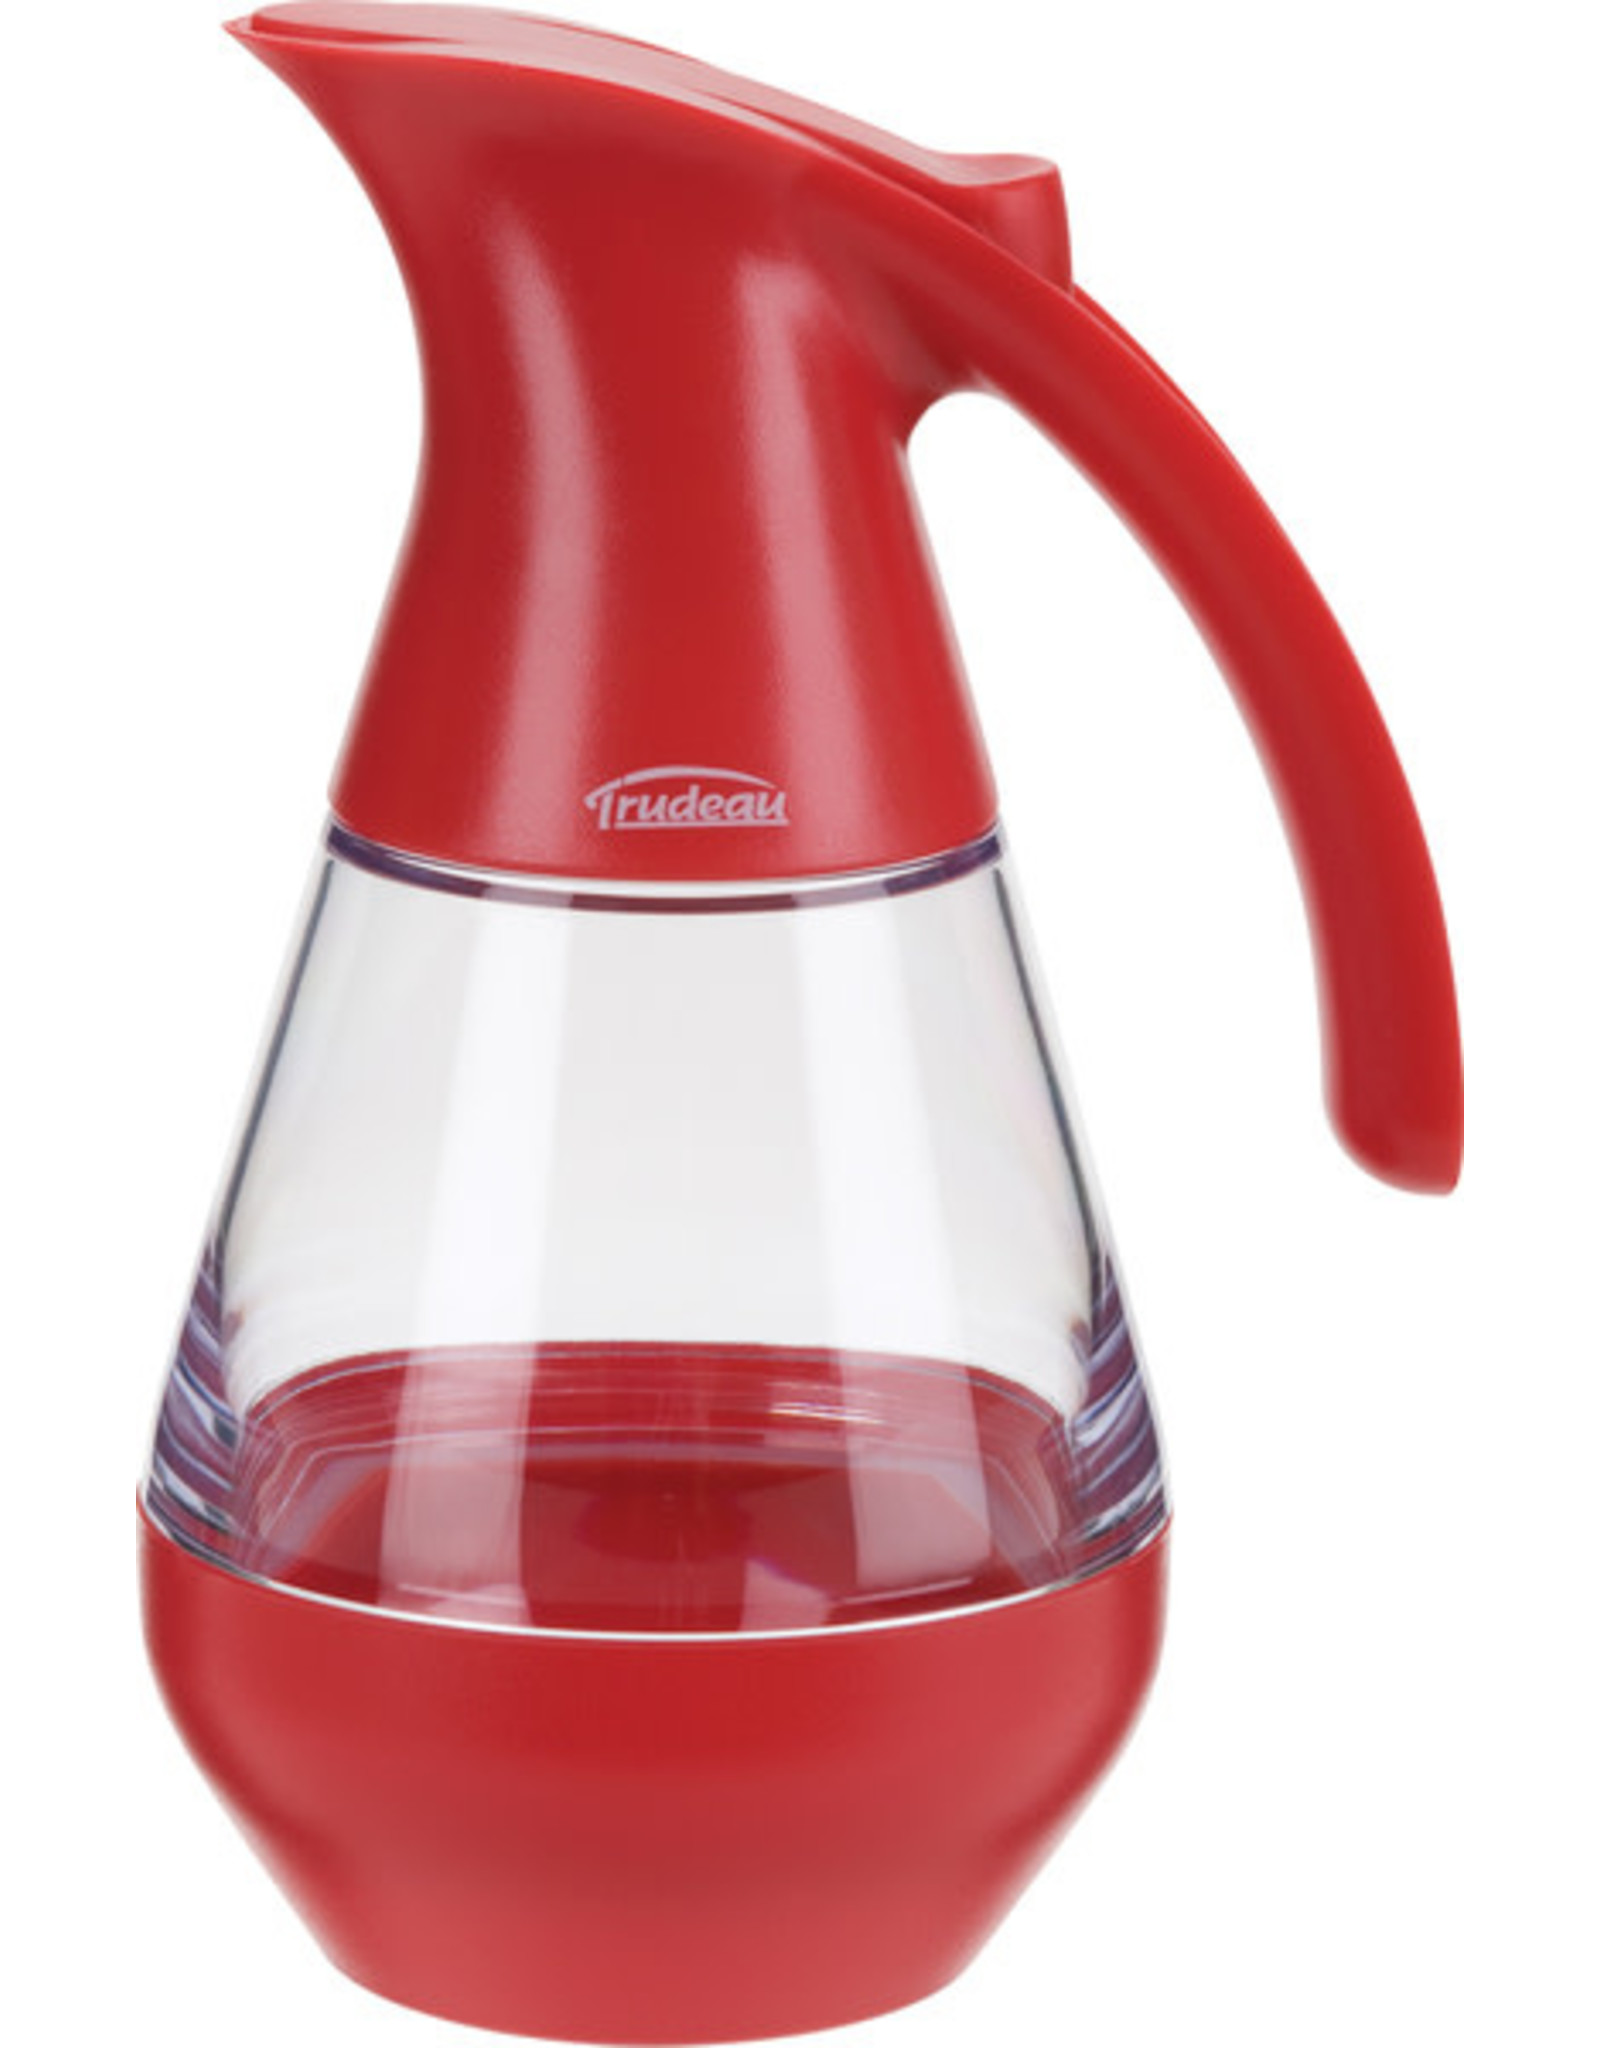 Syrup Dispenser, Candy Red